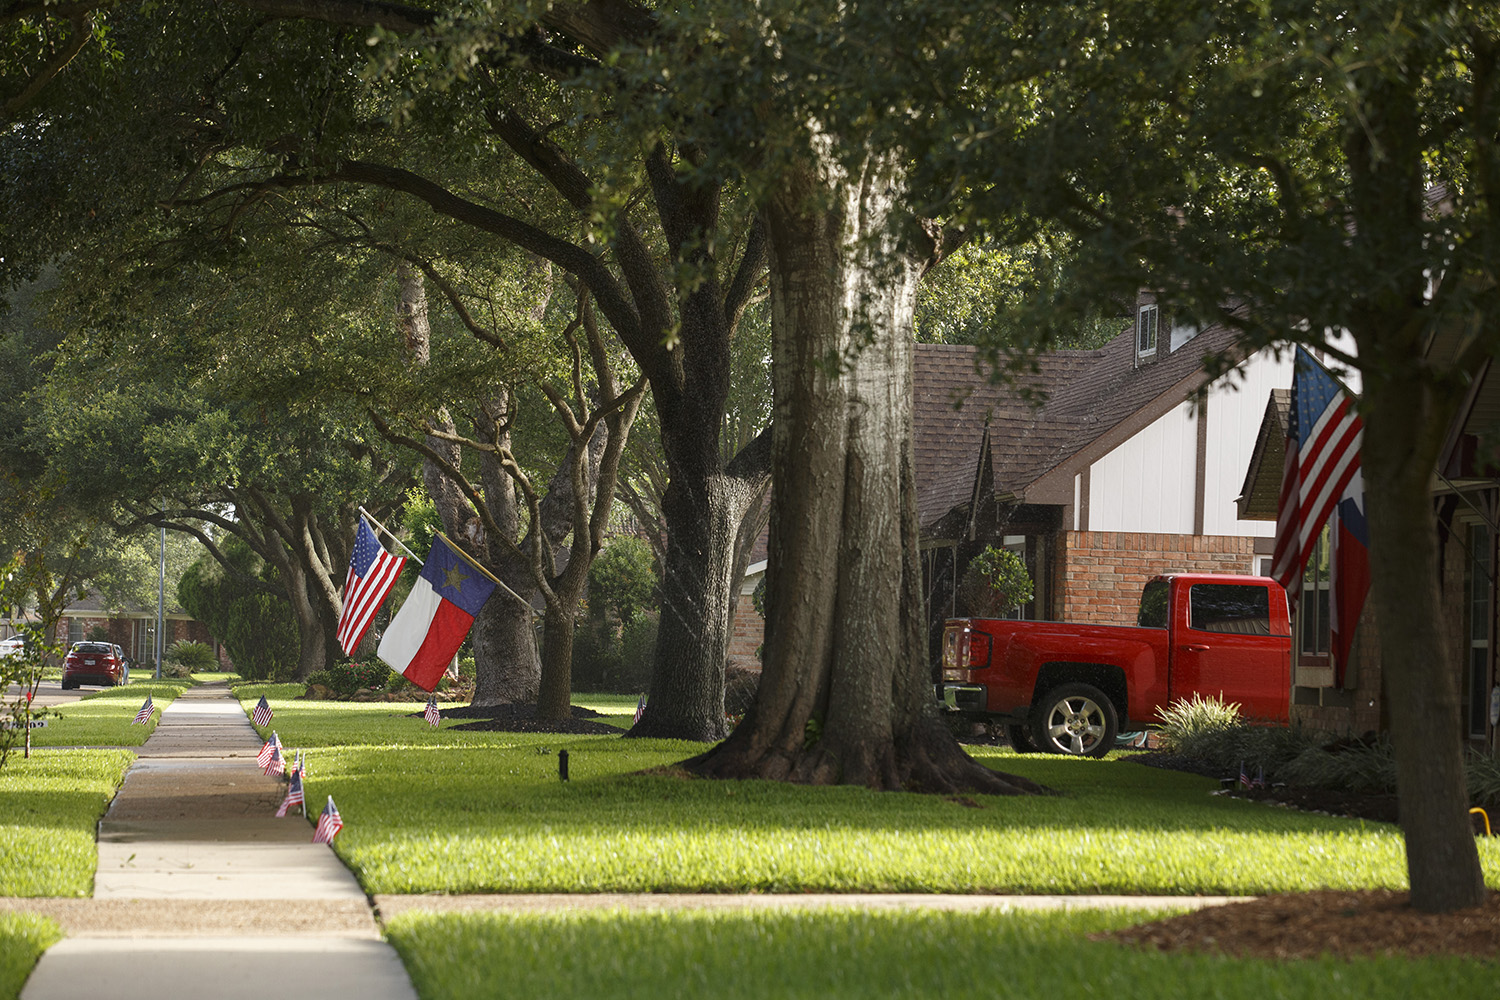 Residents put up flags for the Fourth of July in a neighborhood on the south side of Pasadena on July 1, 2017.